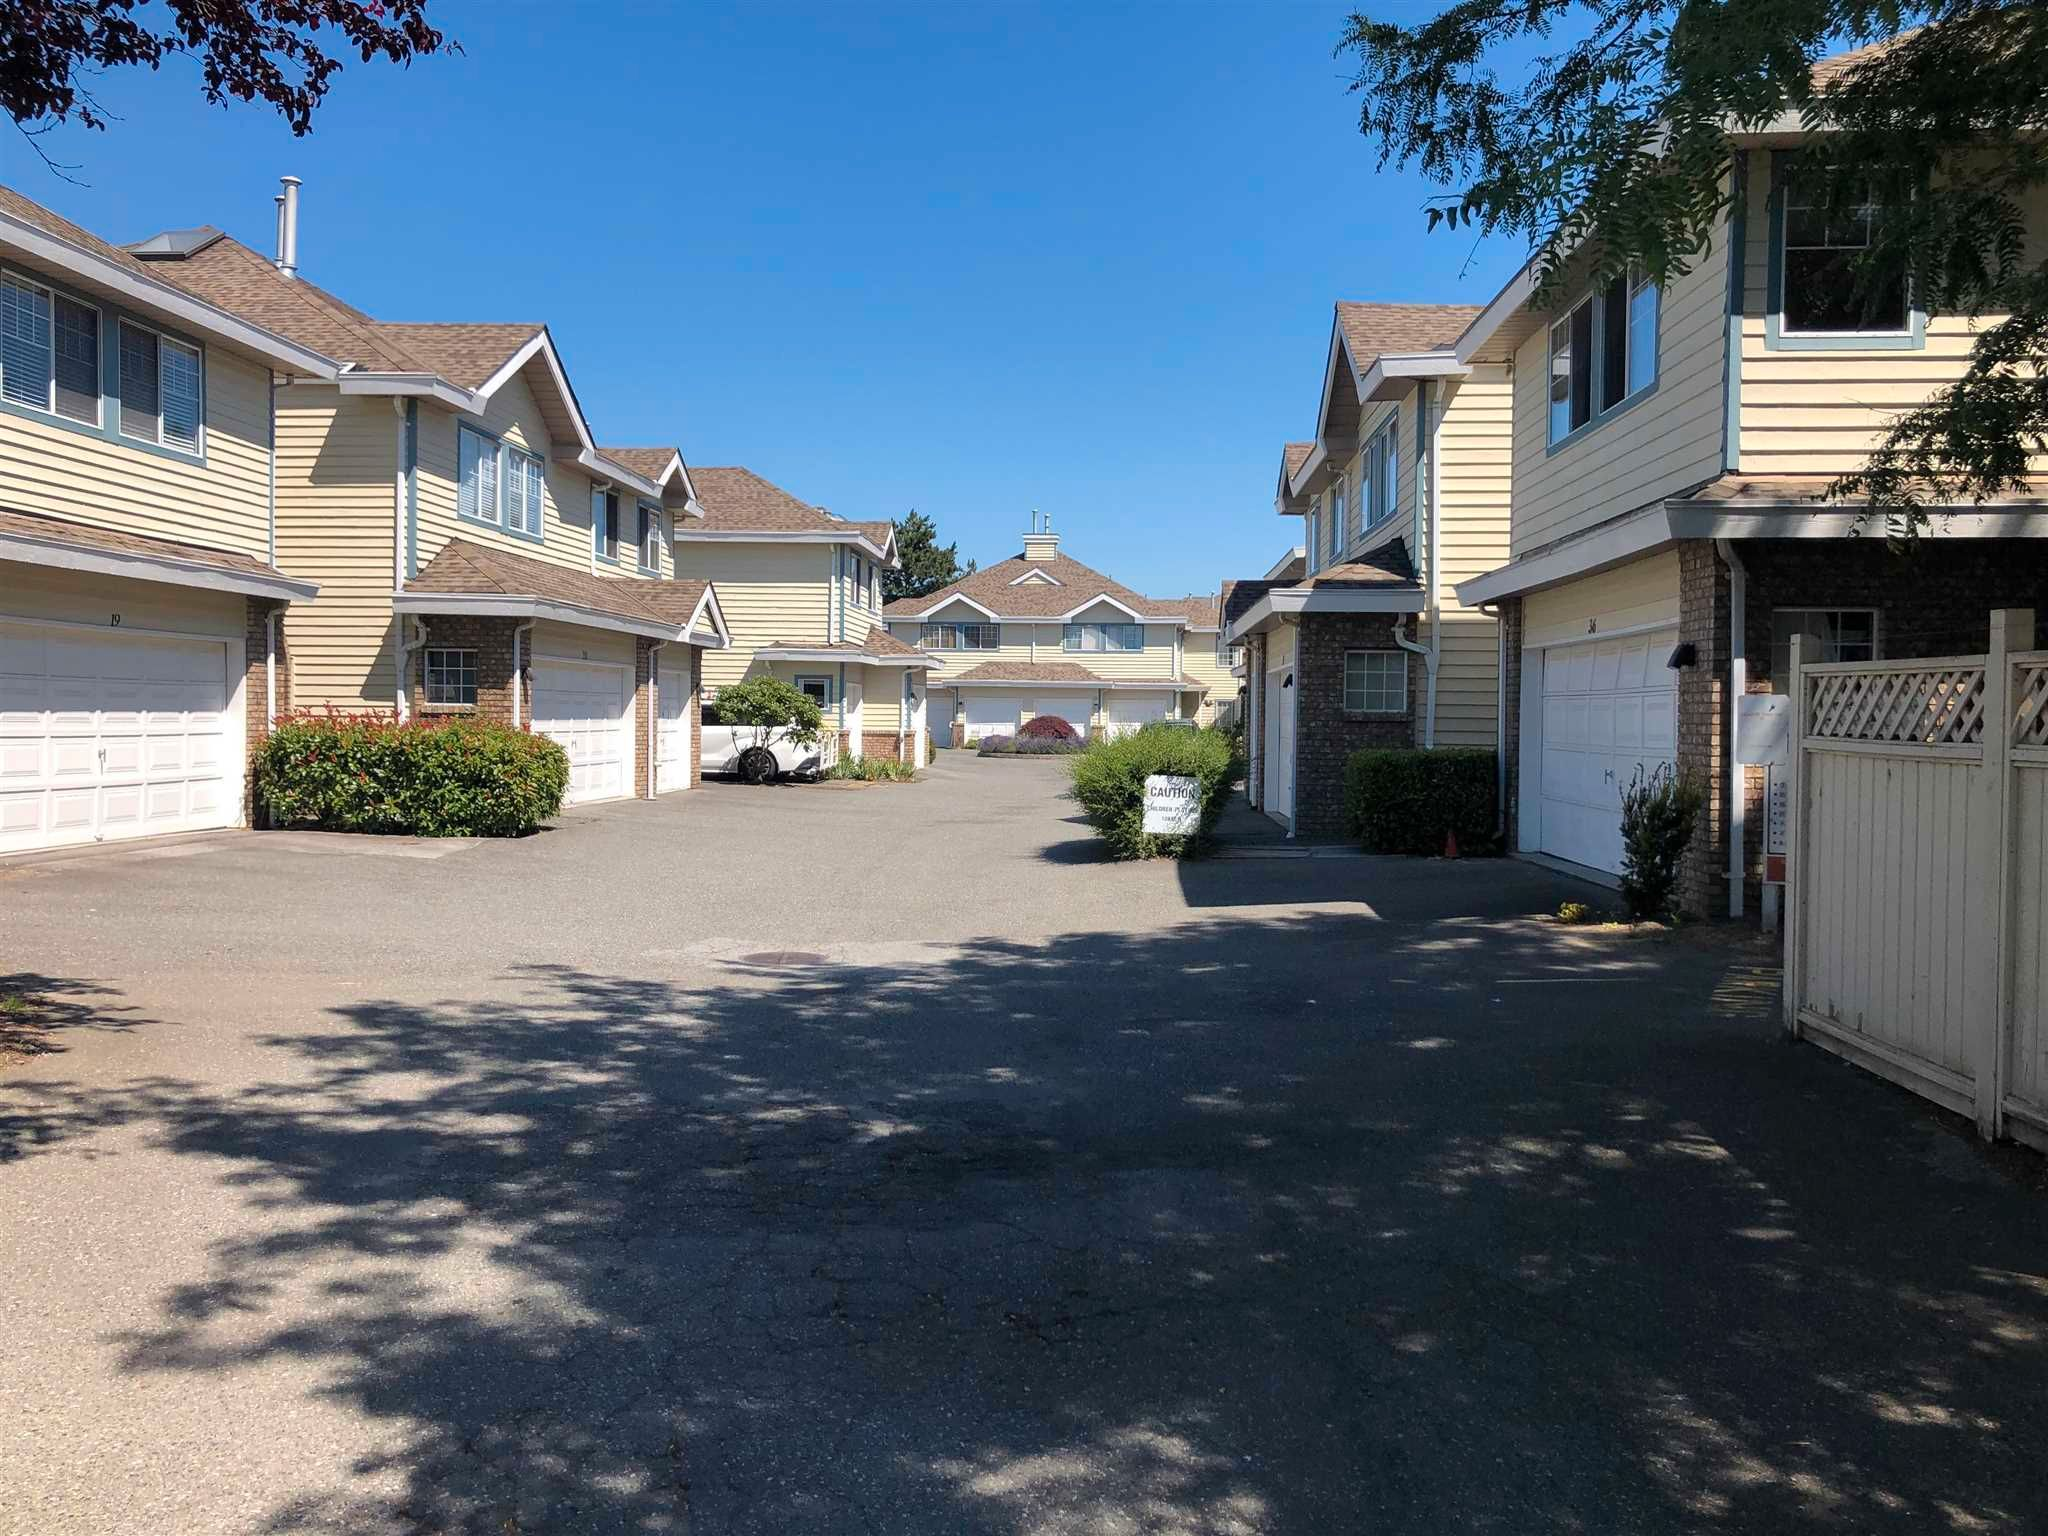 """Main Photo: 34 8551 GENERAL CURRIE Road in Richmond: Brighouse South Townhouse for sale in """"The Crescent"""" : MLS®# R2599839"""